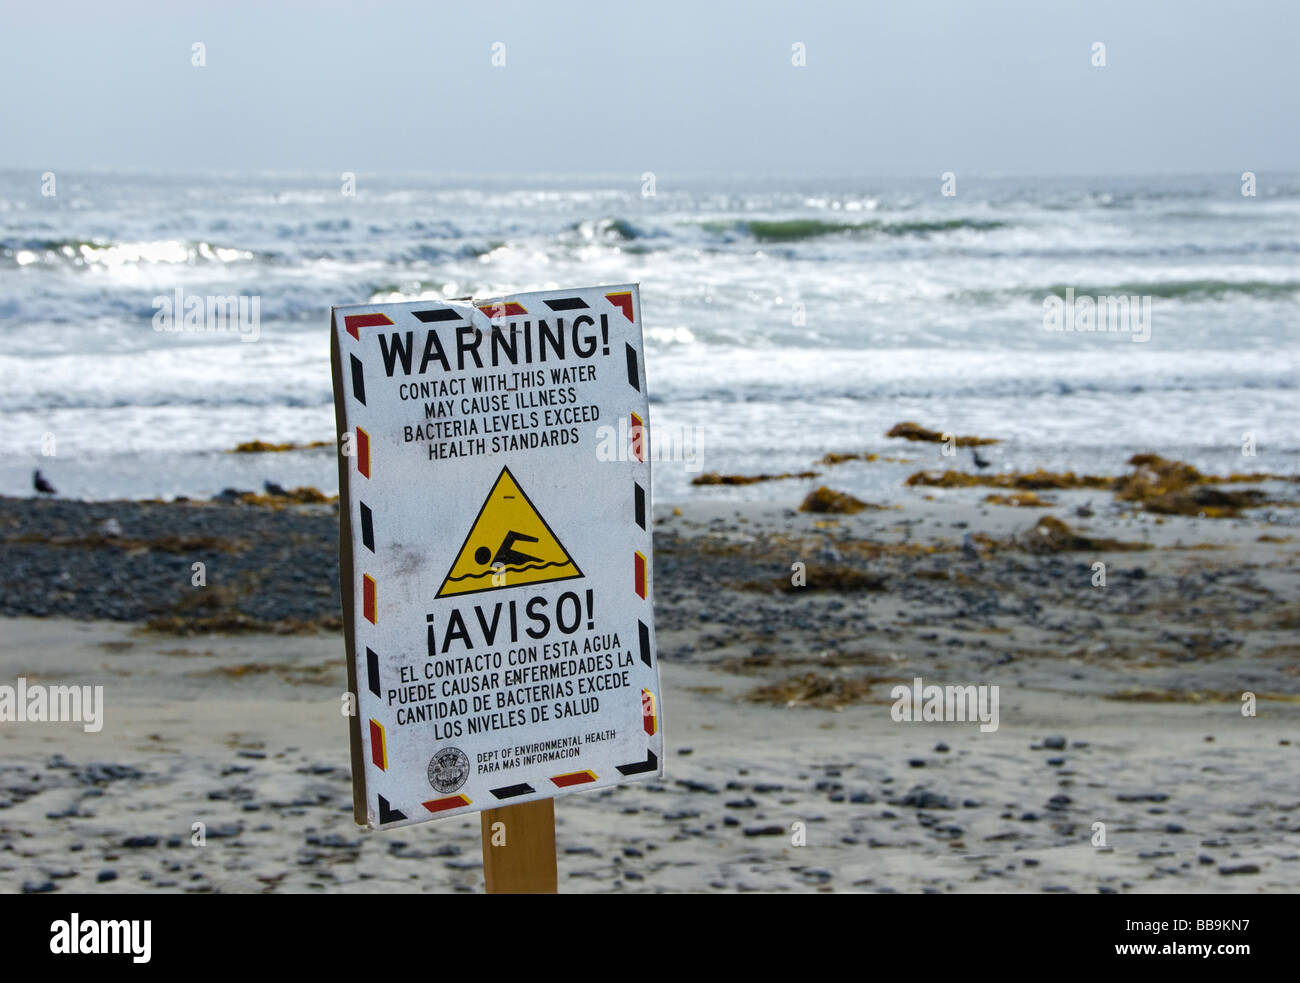 Sign on beach warning people of possible contaminated ocean water.  Sign is written in both english and spanish. - Stock Image